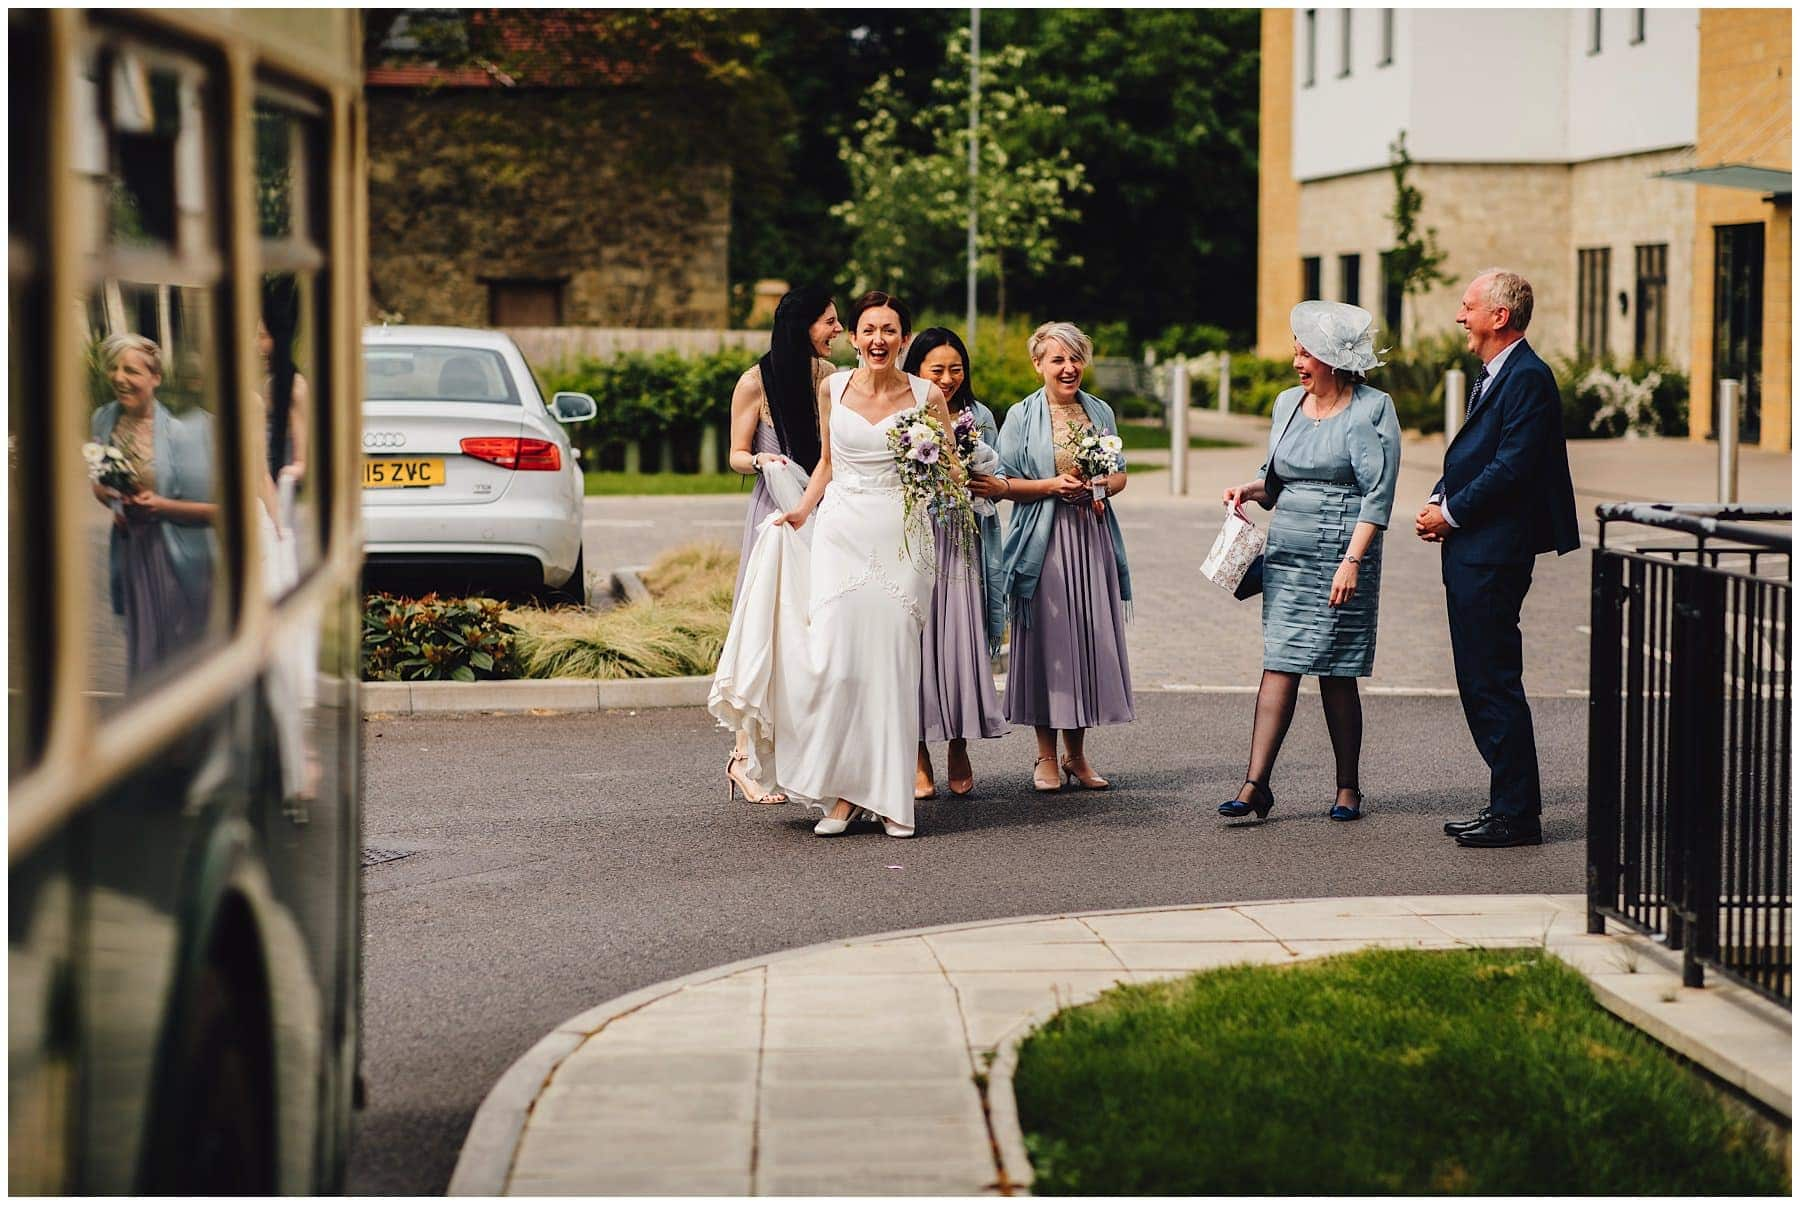 Oxfordshire wedding Photographer J S Coates Wedding Photography. Oxford Town Hall & The Perch Pub 23